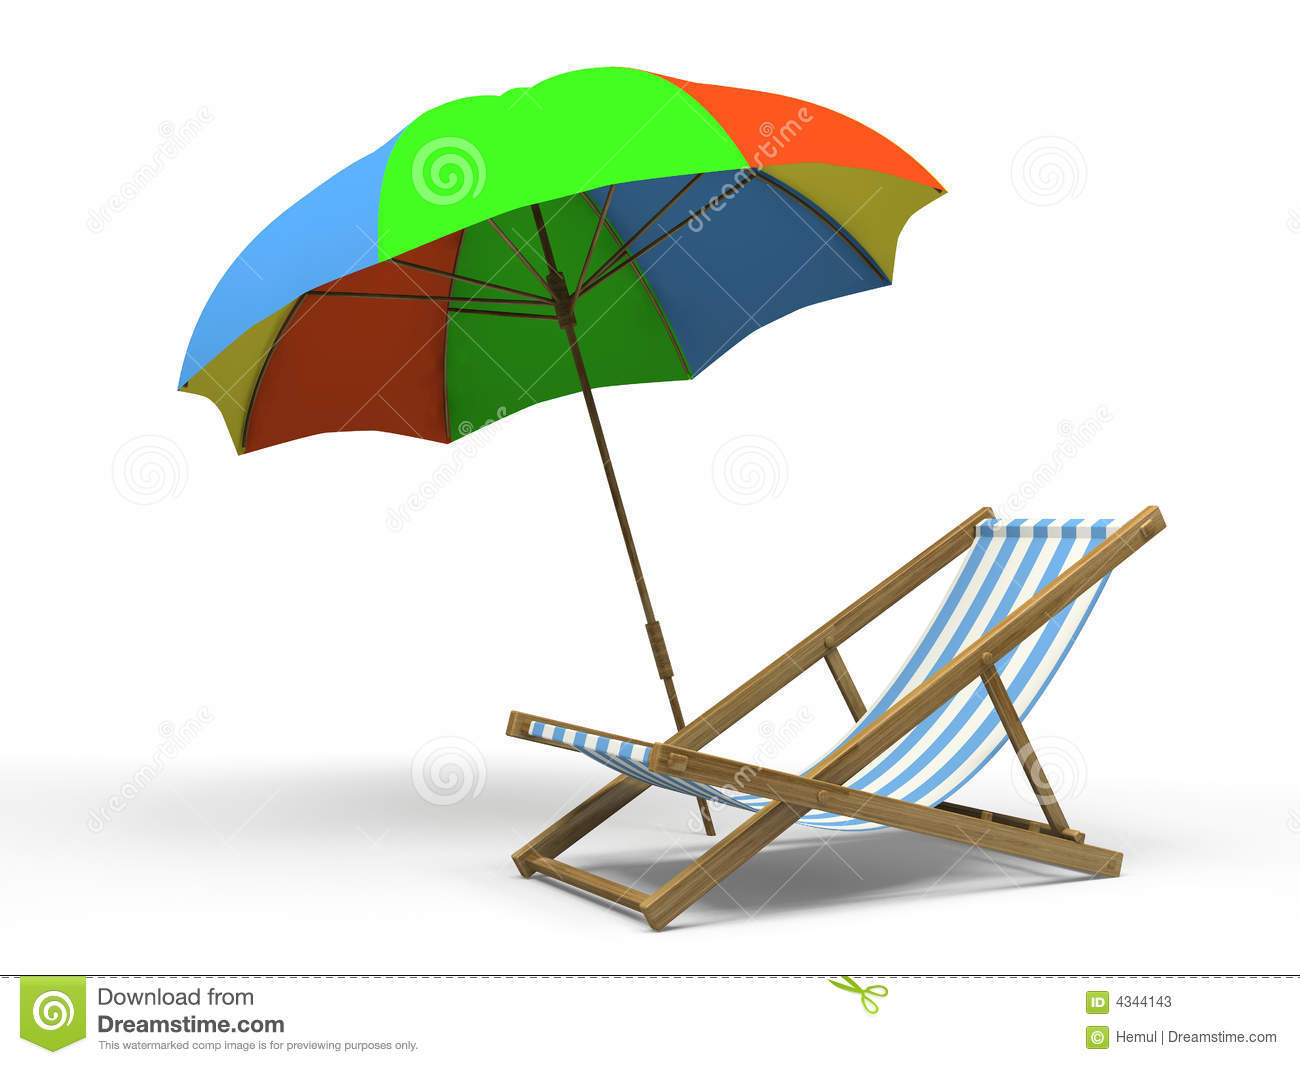 chaise longue beach with Photos Stock Chaise Longue Et Parasol Image4344143 on T3416 Illustrations Pour L Ete Plage Et Farniente besides Photos Stock Chaise Longue Et Parasol Image4344143 additionally Stock Photo Promenade On The Beach Alassio Italian Riviera Liguria Italy Europe 124545285 likewise Quando Andare In Madagascar additionally 2.